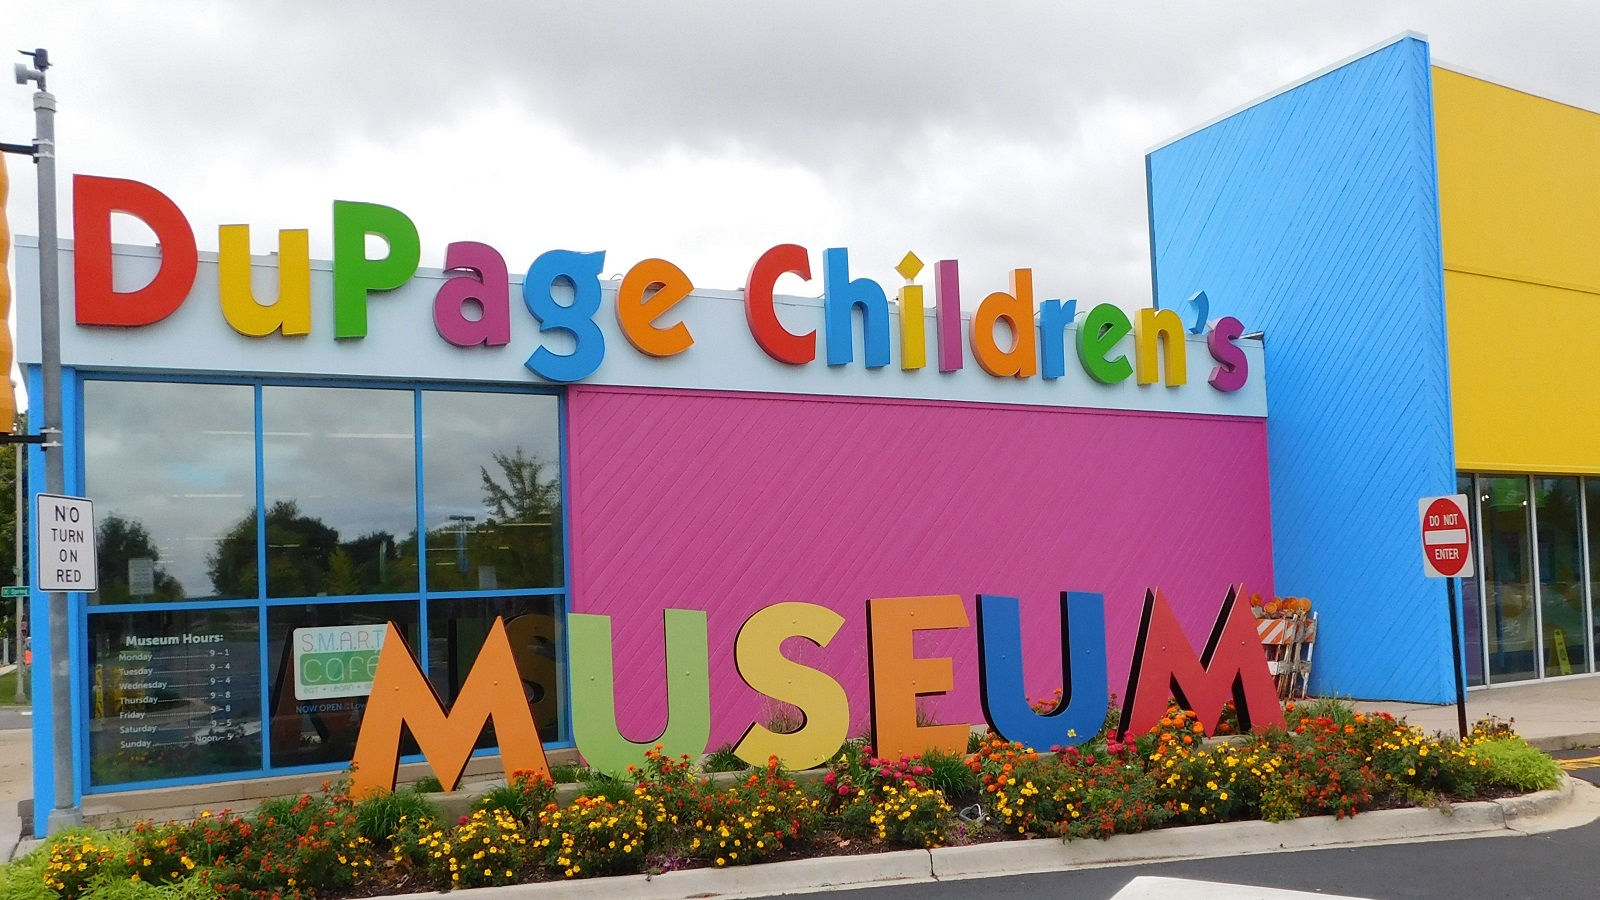 Things to do in Lisle - Children's Museum